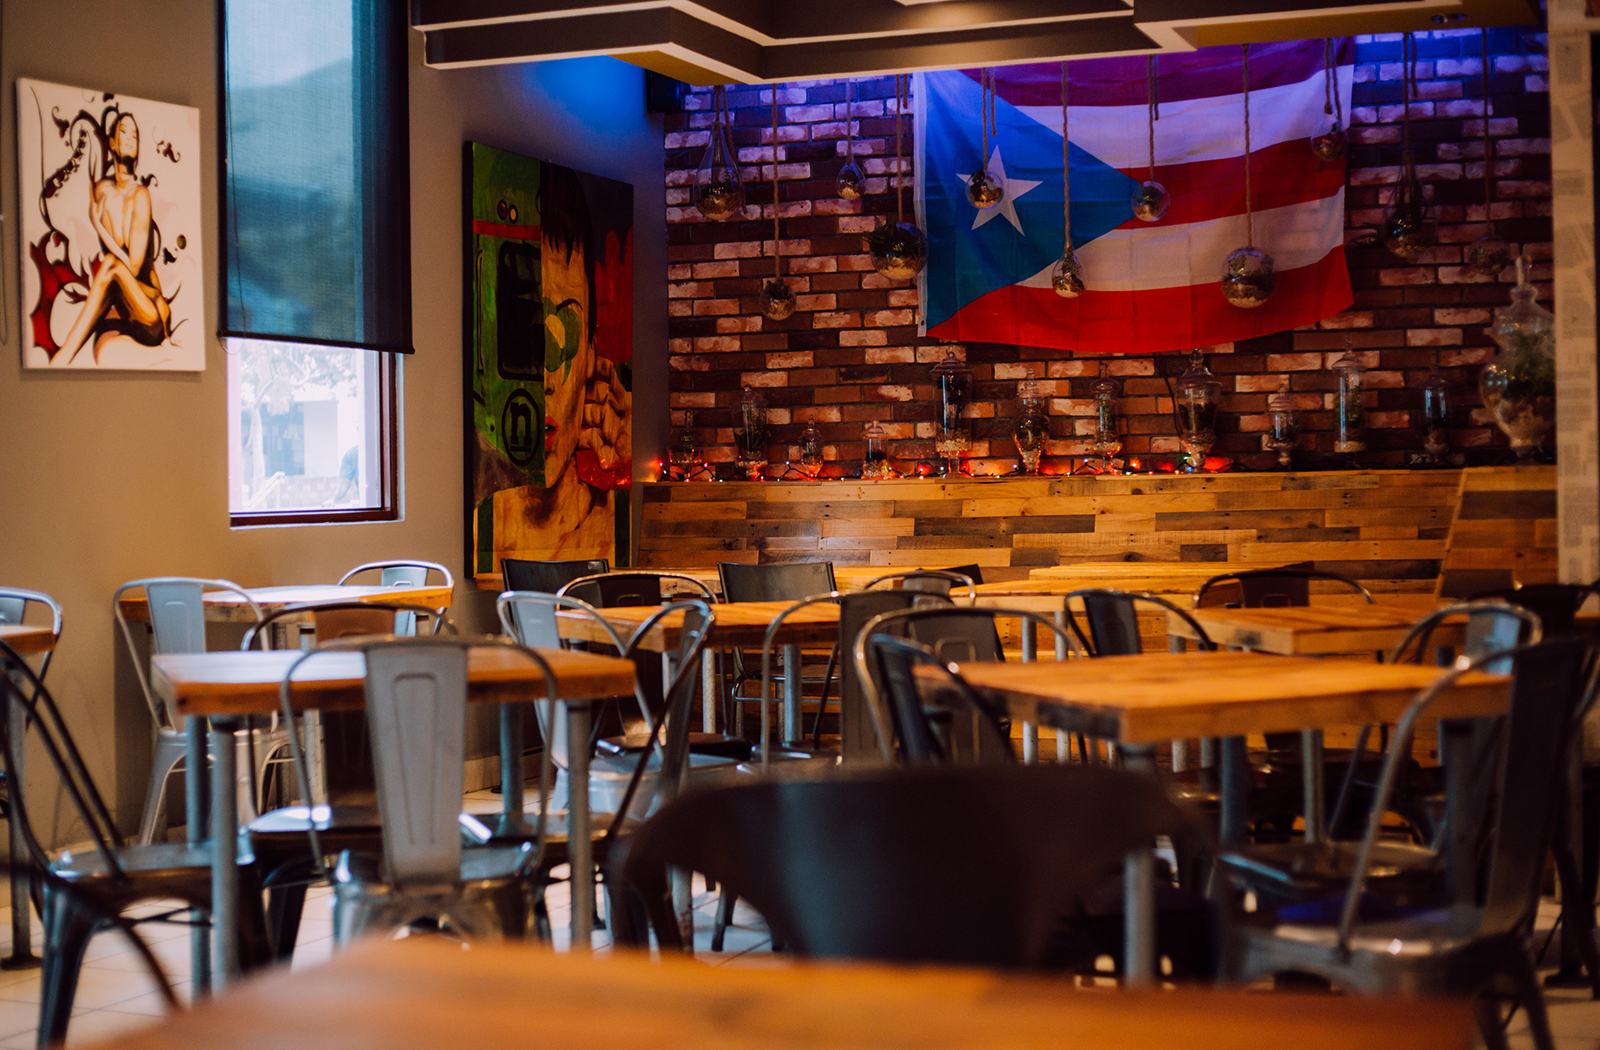 Inside view of a pizza restaurant in Caguas.